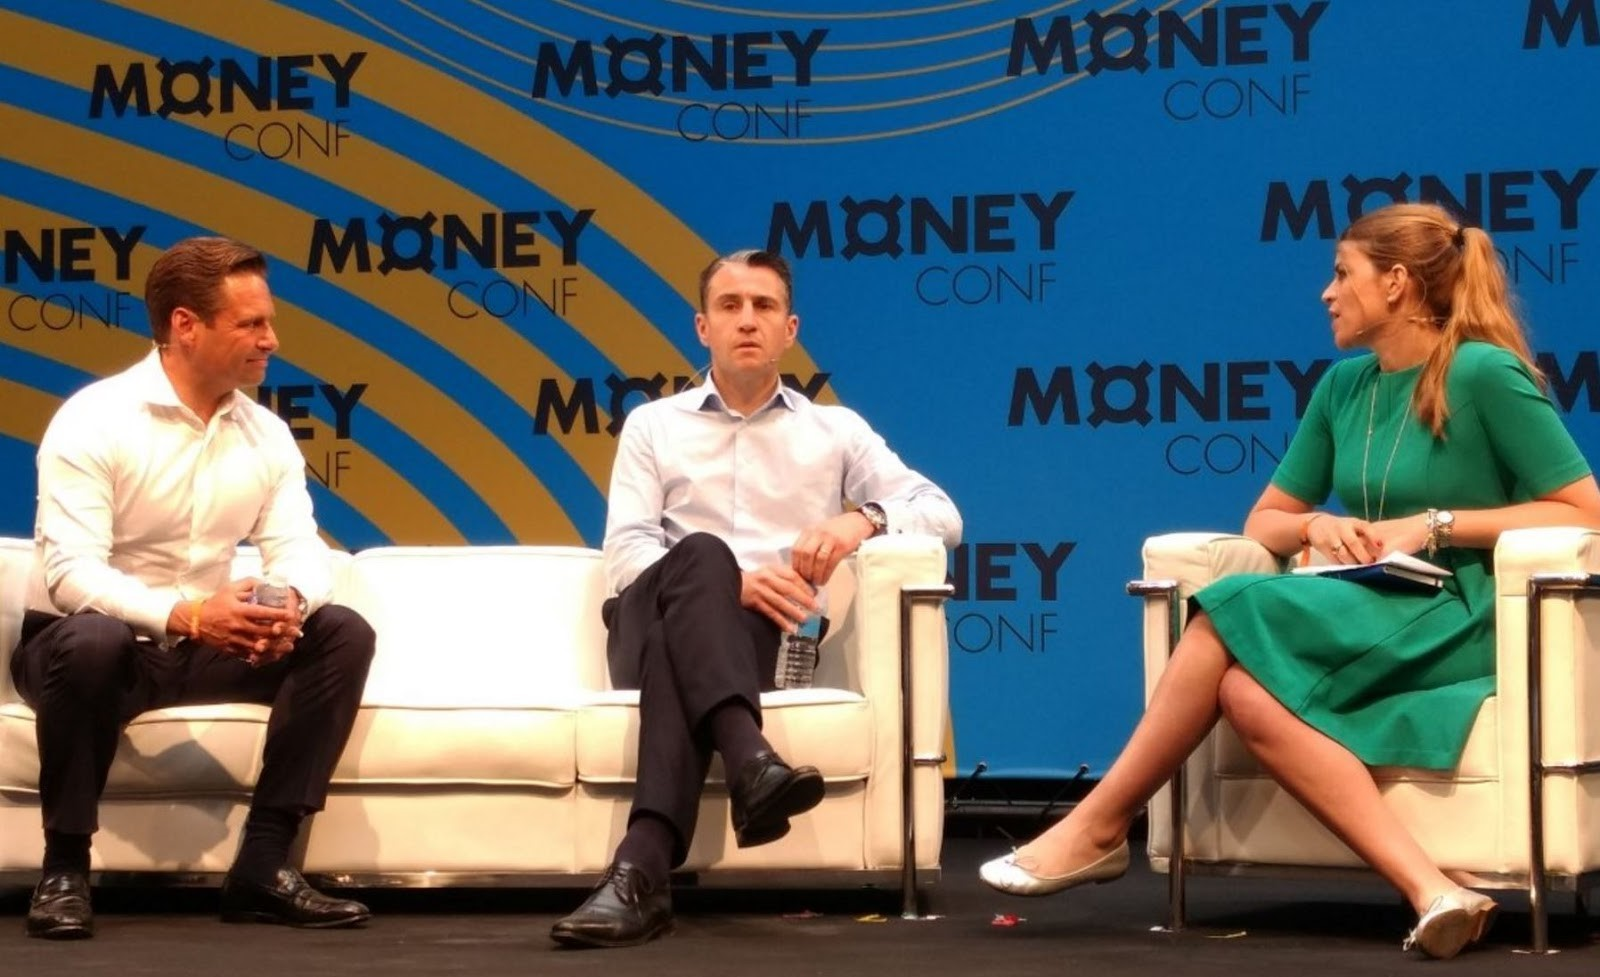 The Most Important Things to Know from the MoneyConf 2016 in Madrid